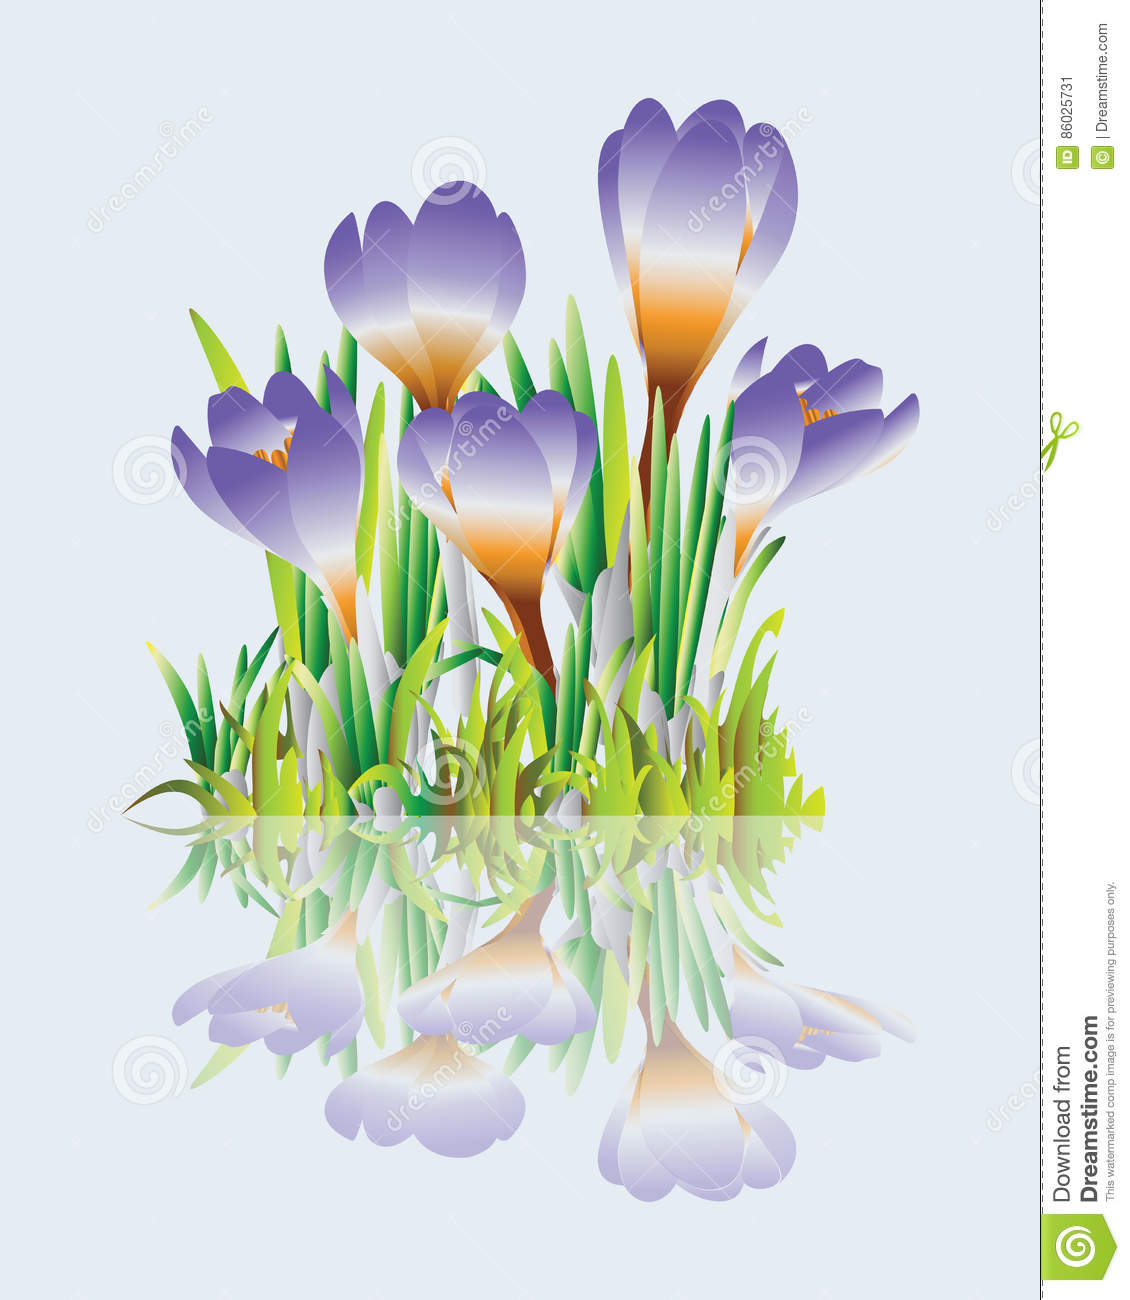 Crocuses Grass And Spring Flowers Vector Image Element For Design Holiday Greeting Cards With Womens Day Engagement Wedding Or Birthday